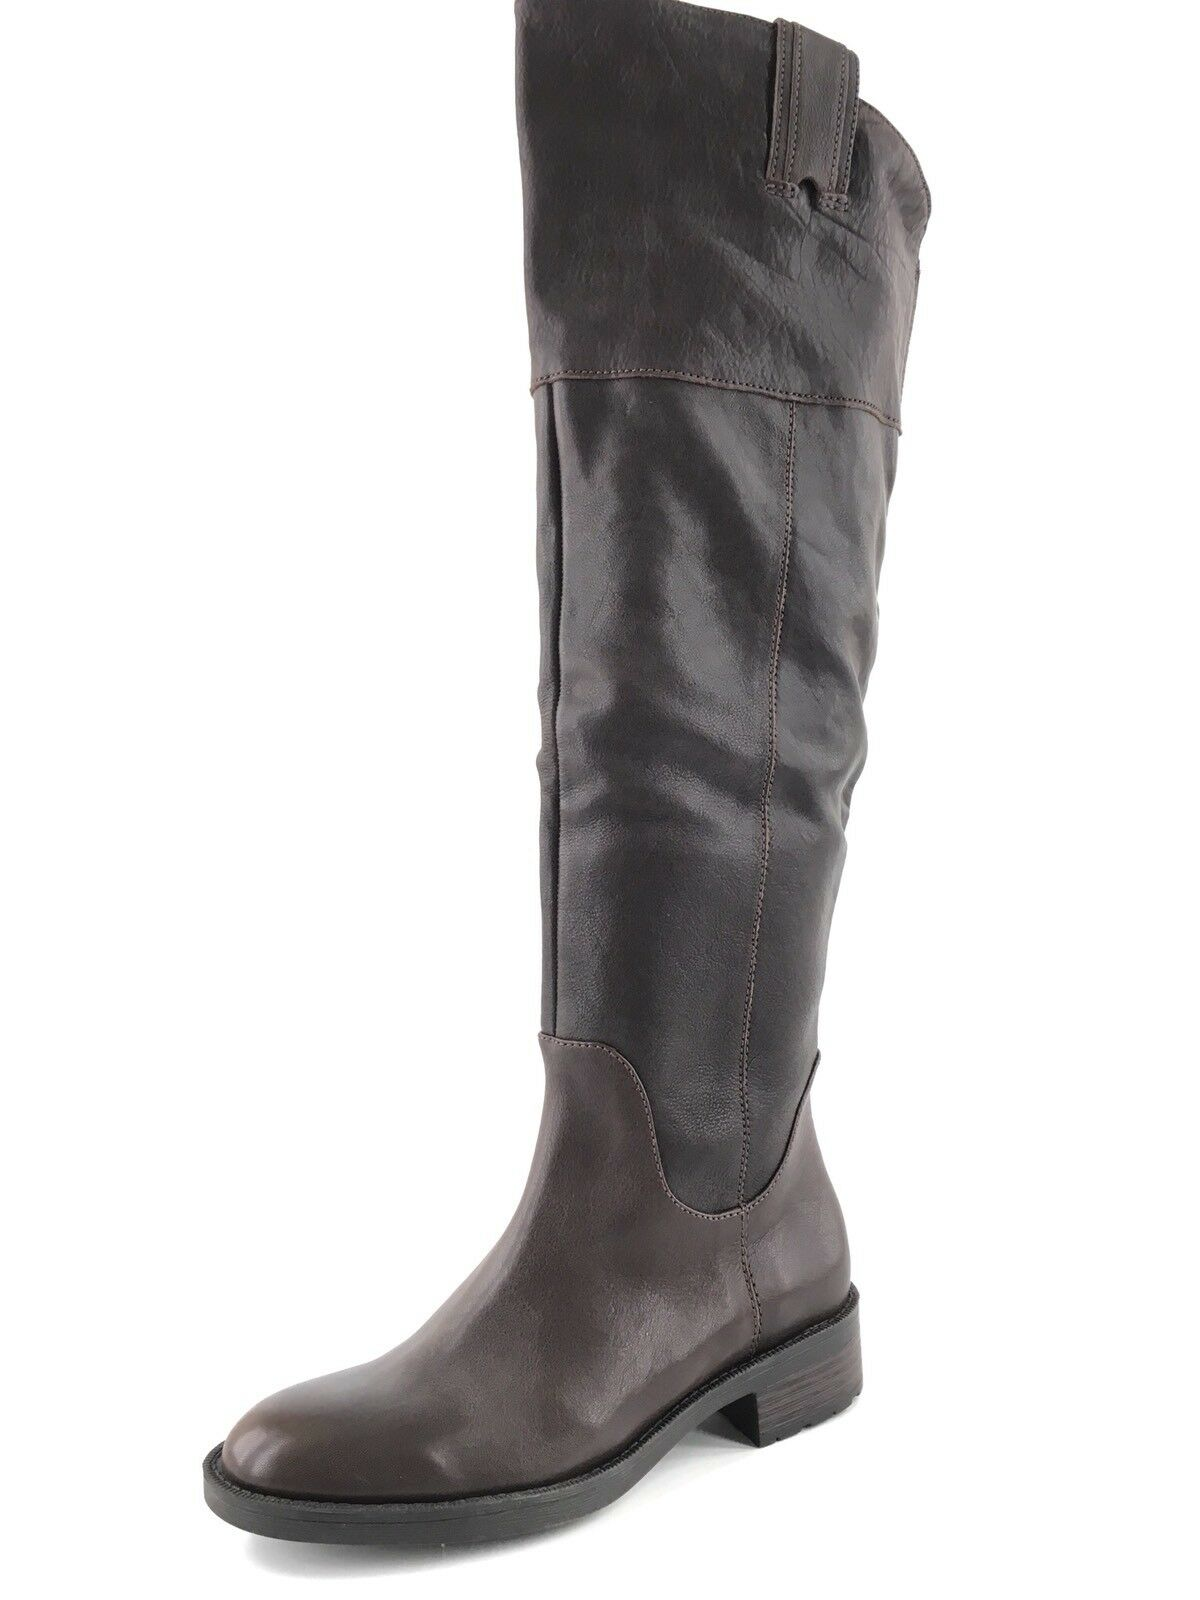 Enzo Angiolini Holdyn Brown Leather Over TheKnee Boots Women's Size 5.5 M